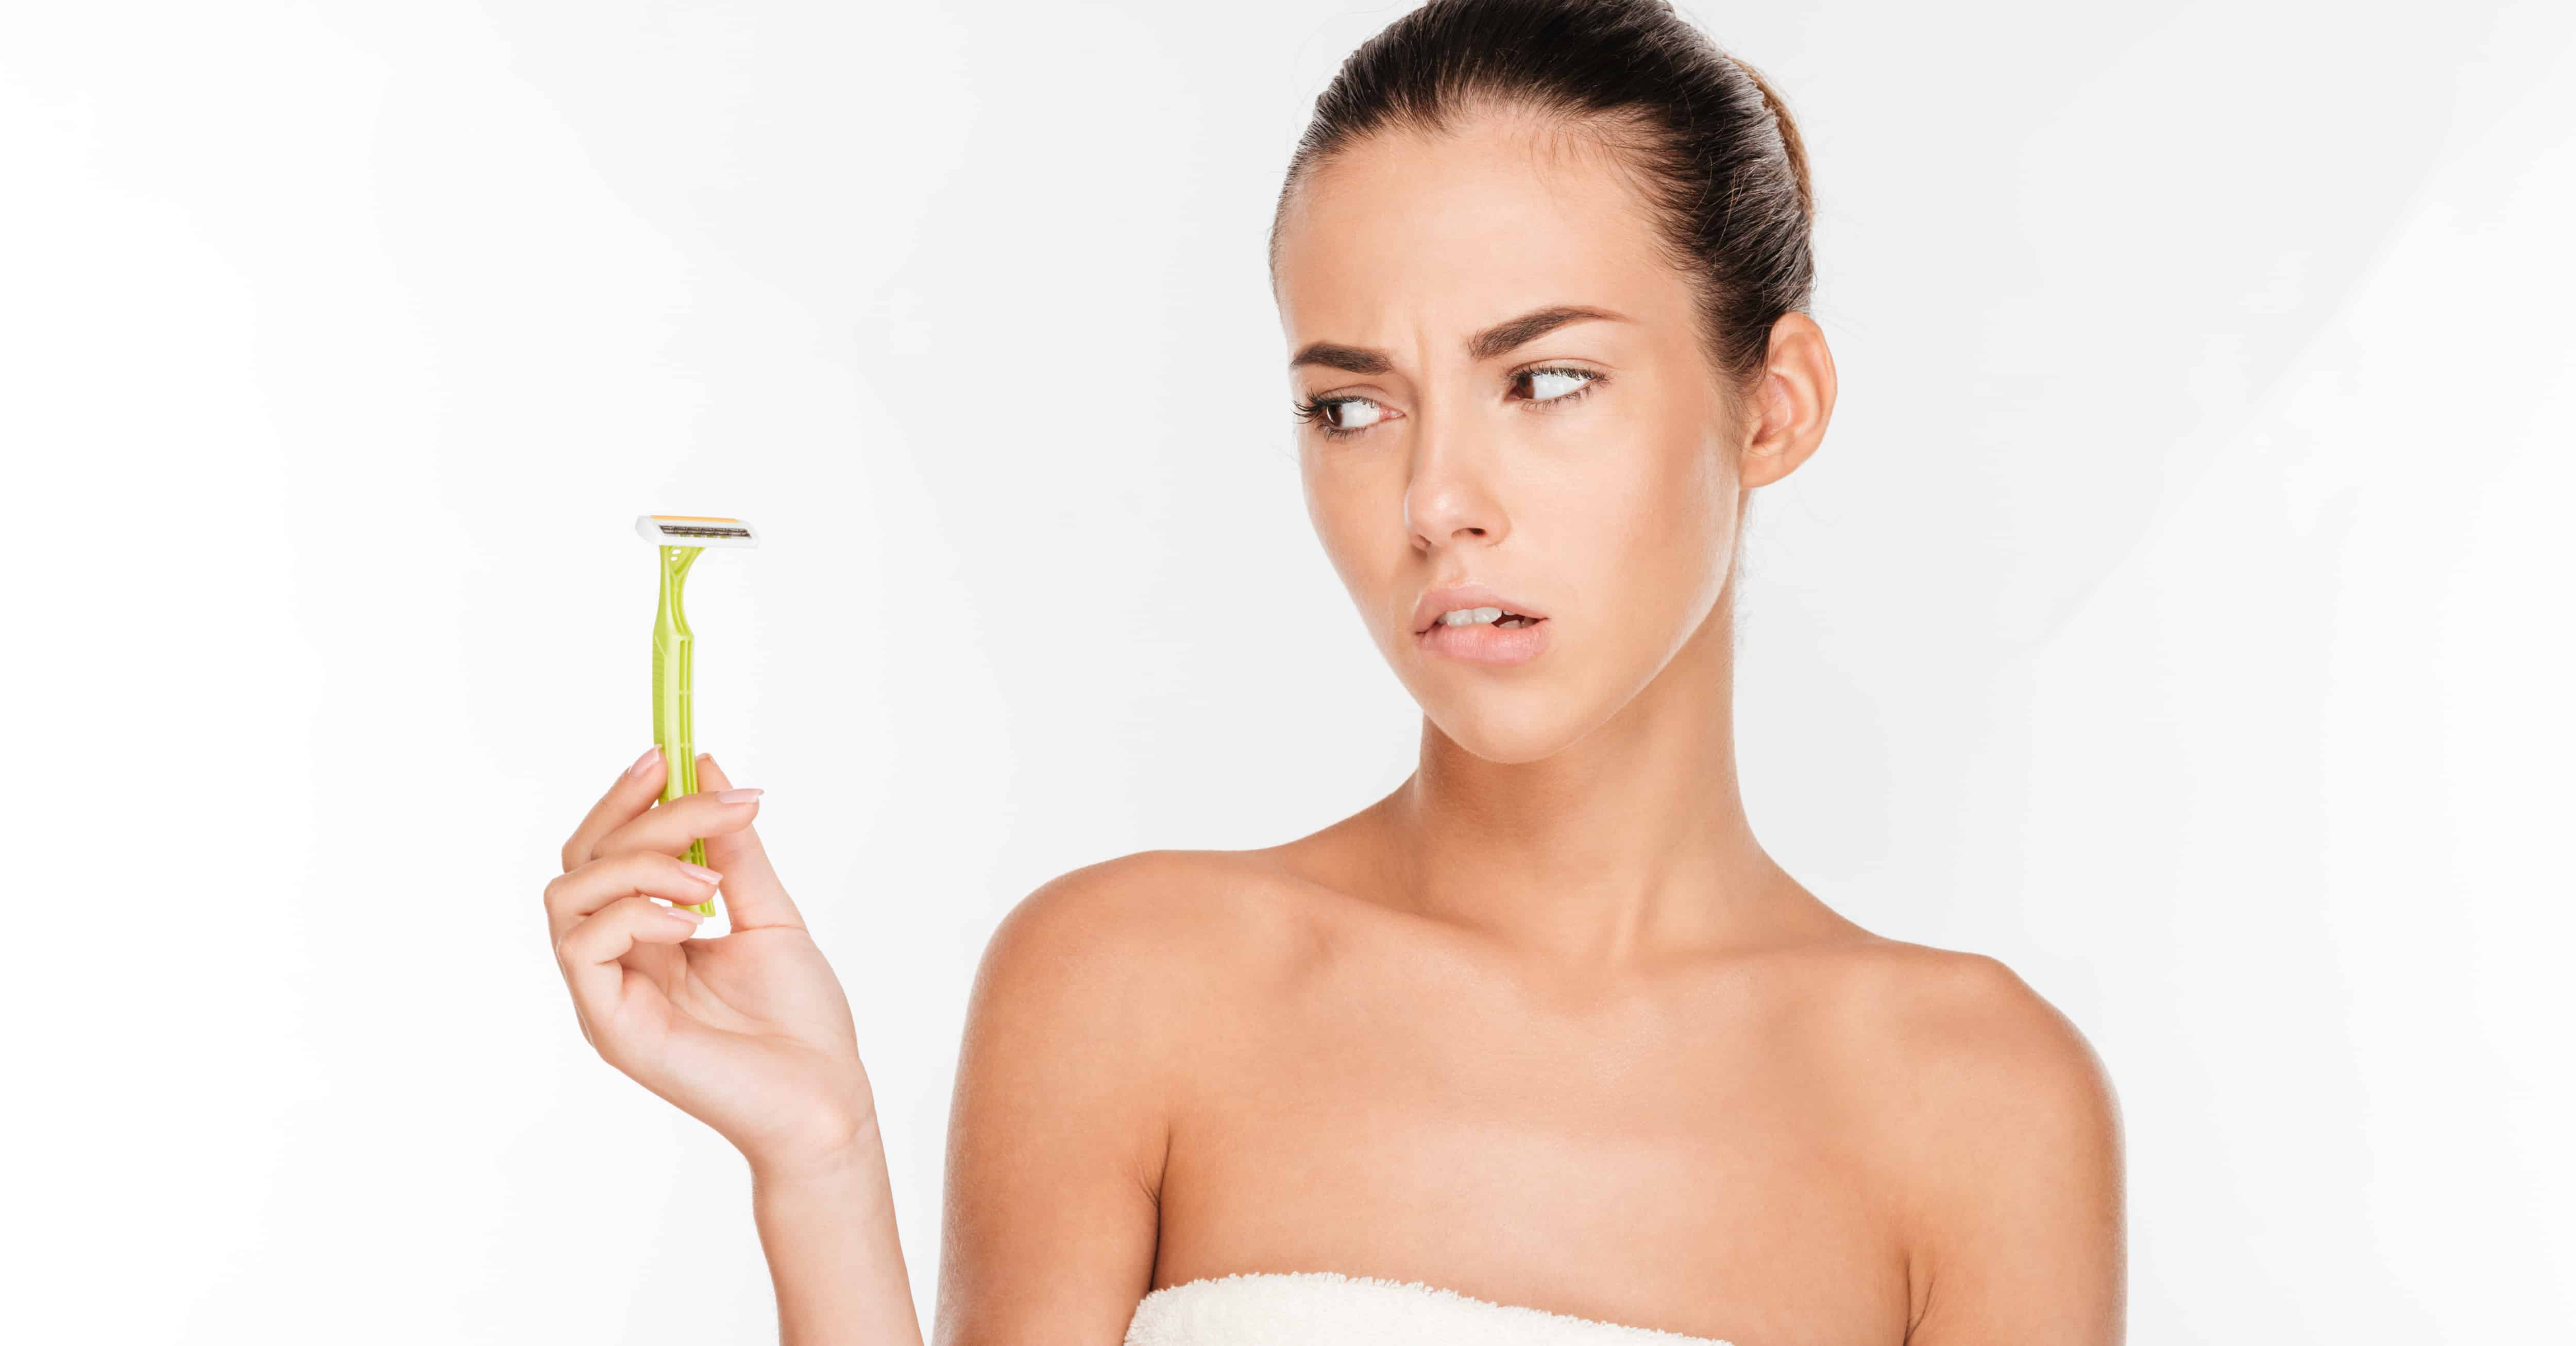 7 Best Pubic Hair Shaving Hacks Shared By Midwife | BellyBelly